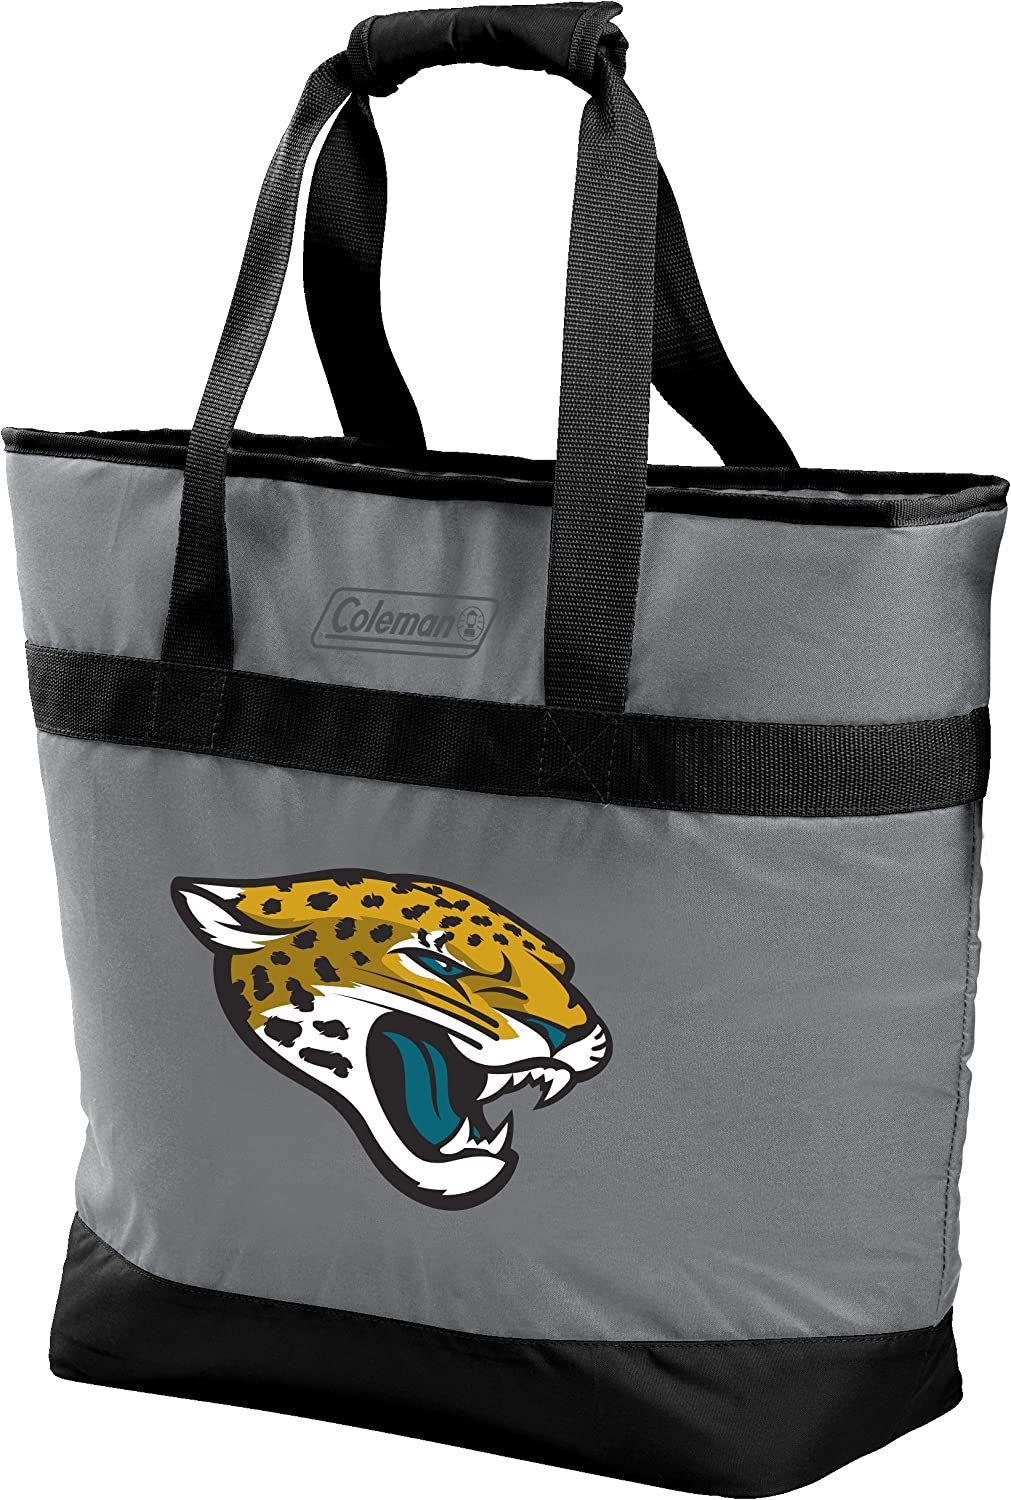 NFL Soft-Side Insulated Large Tote Cooler Bag ALL TEAM OPTIONS 30-Can Capacity